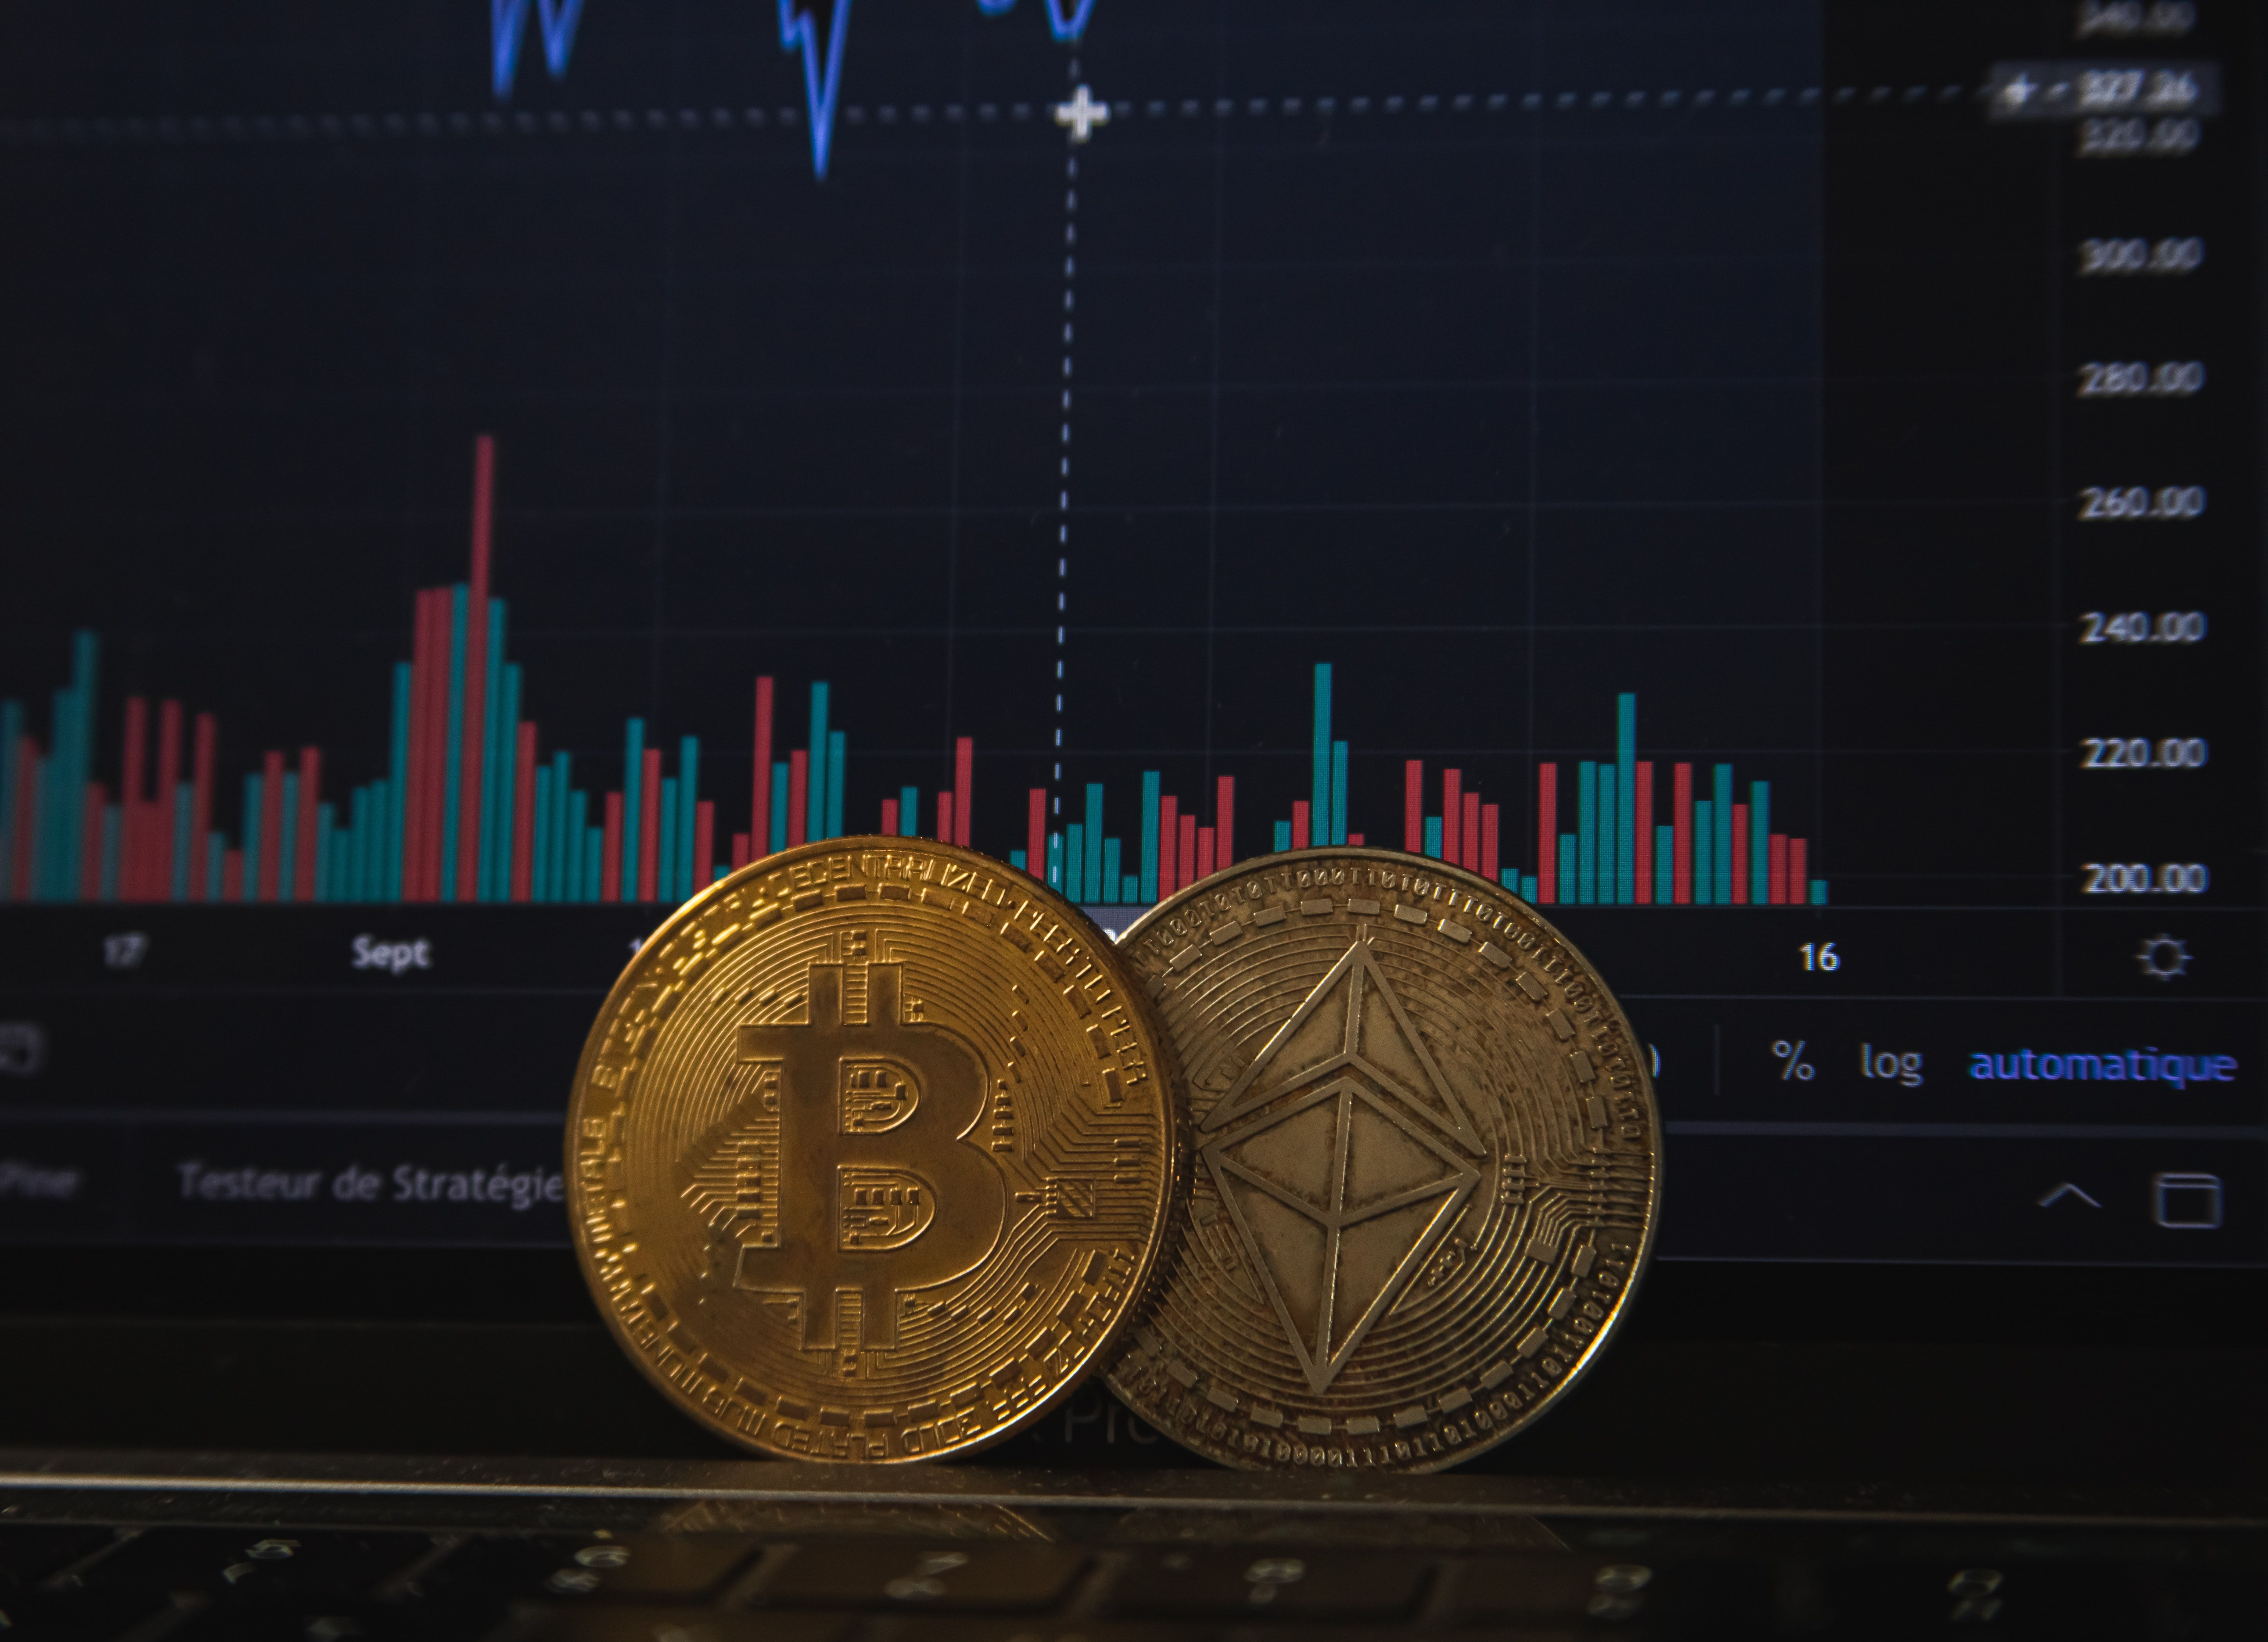 /crypto-options-who-to-know-and-what-to-watch-vyr33hx feature image